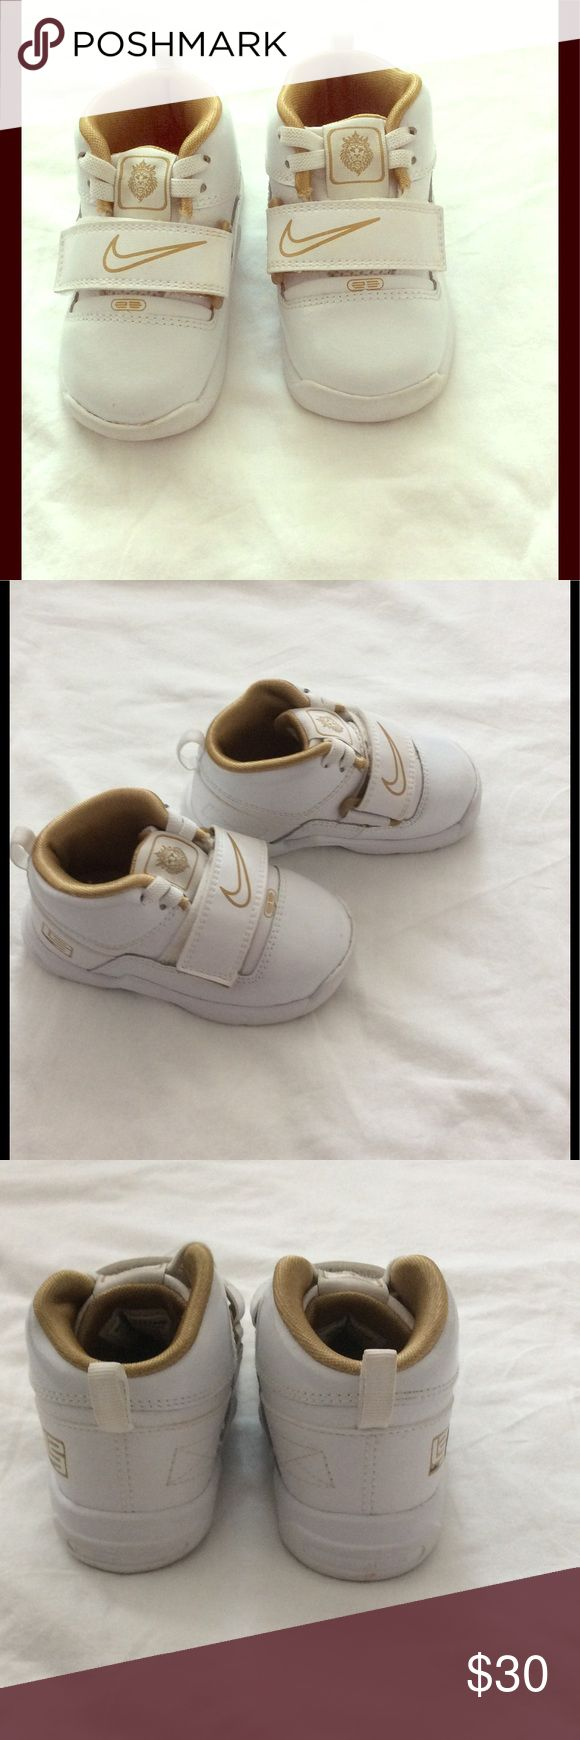 Lebron baby Nike shoes. Like new baby Nike shoes in size 5. White and gold color. Nike Shoes Sneakers